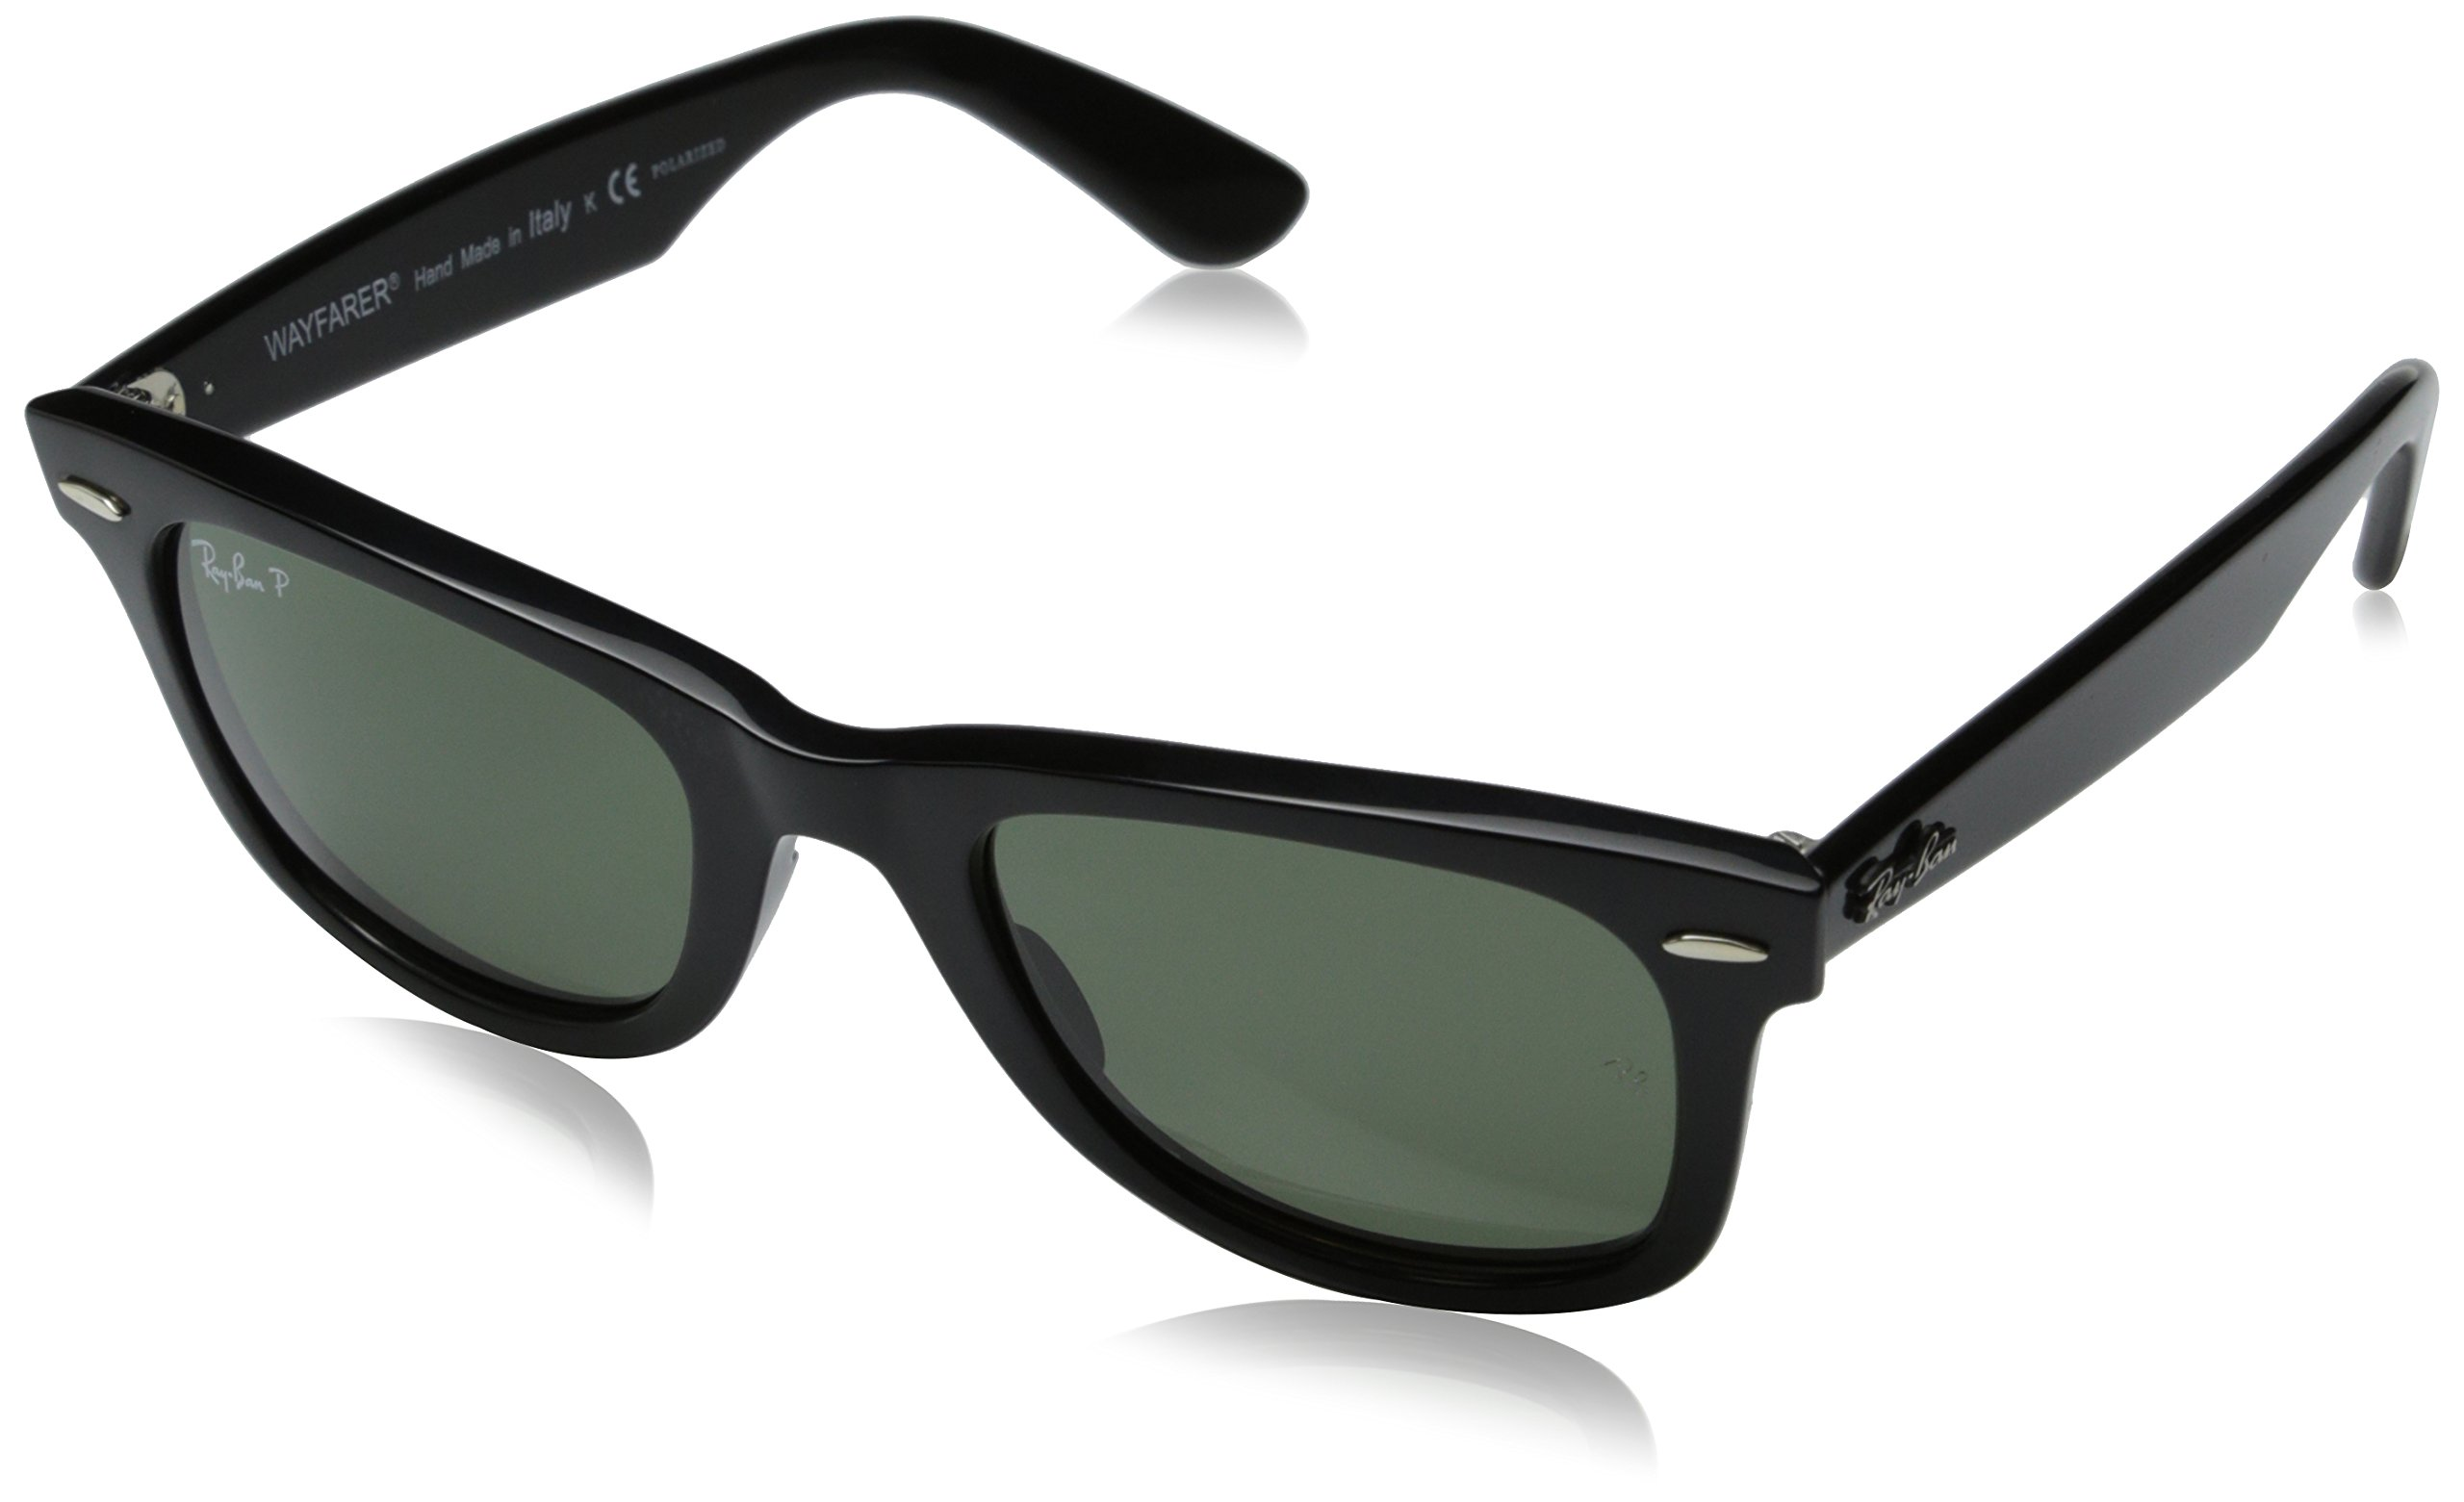 Ray-Ban RB2140 Wayfarer Sunglasses, Black/Polarized Green, 50 mm by Ray-Ban